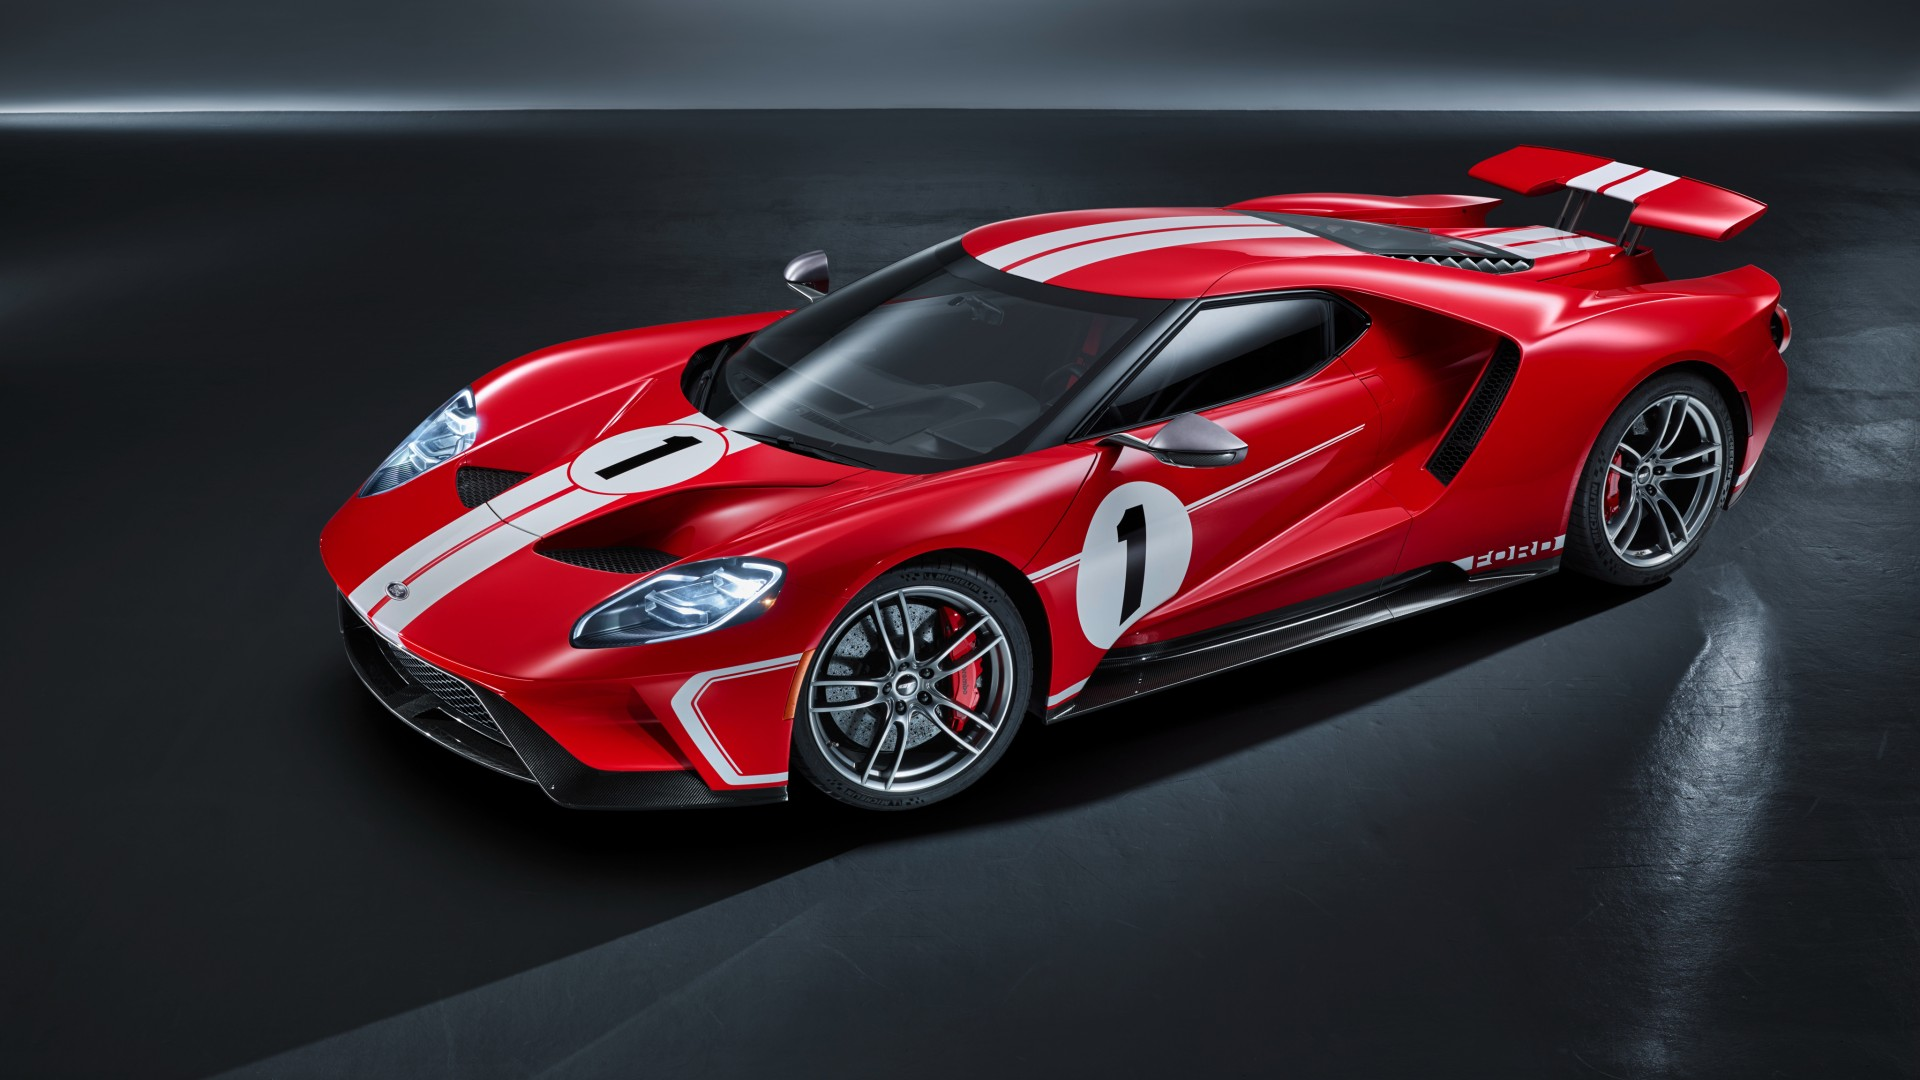 Ford Gt Supercars American Cars 2017 4k Uhd Widescreen: 2018 Ford GT 67 Heritage Edition 4K 4 Wallpaper